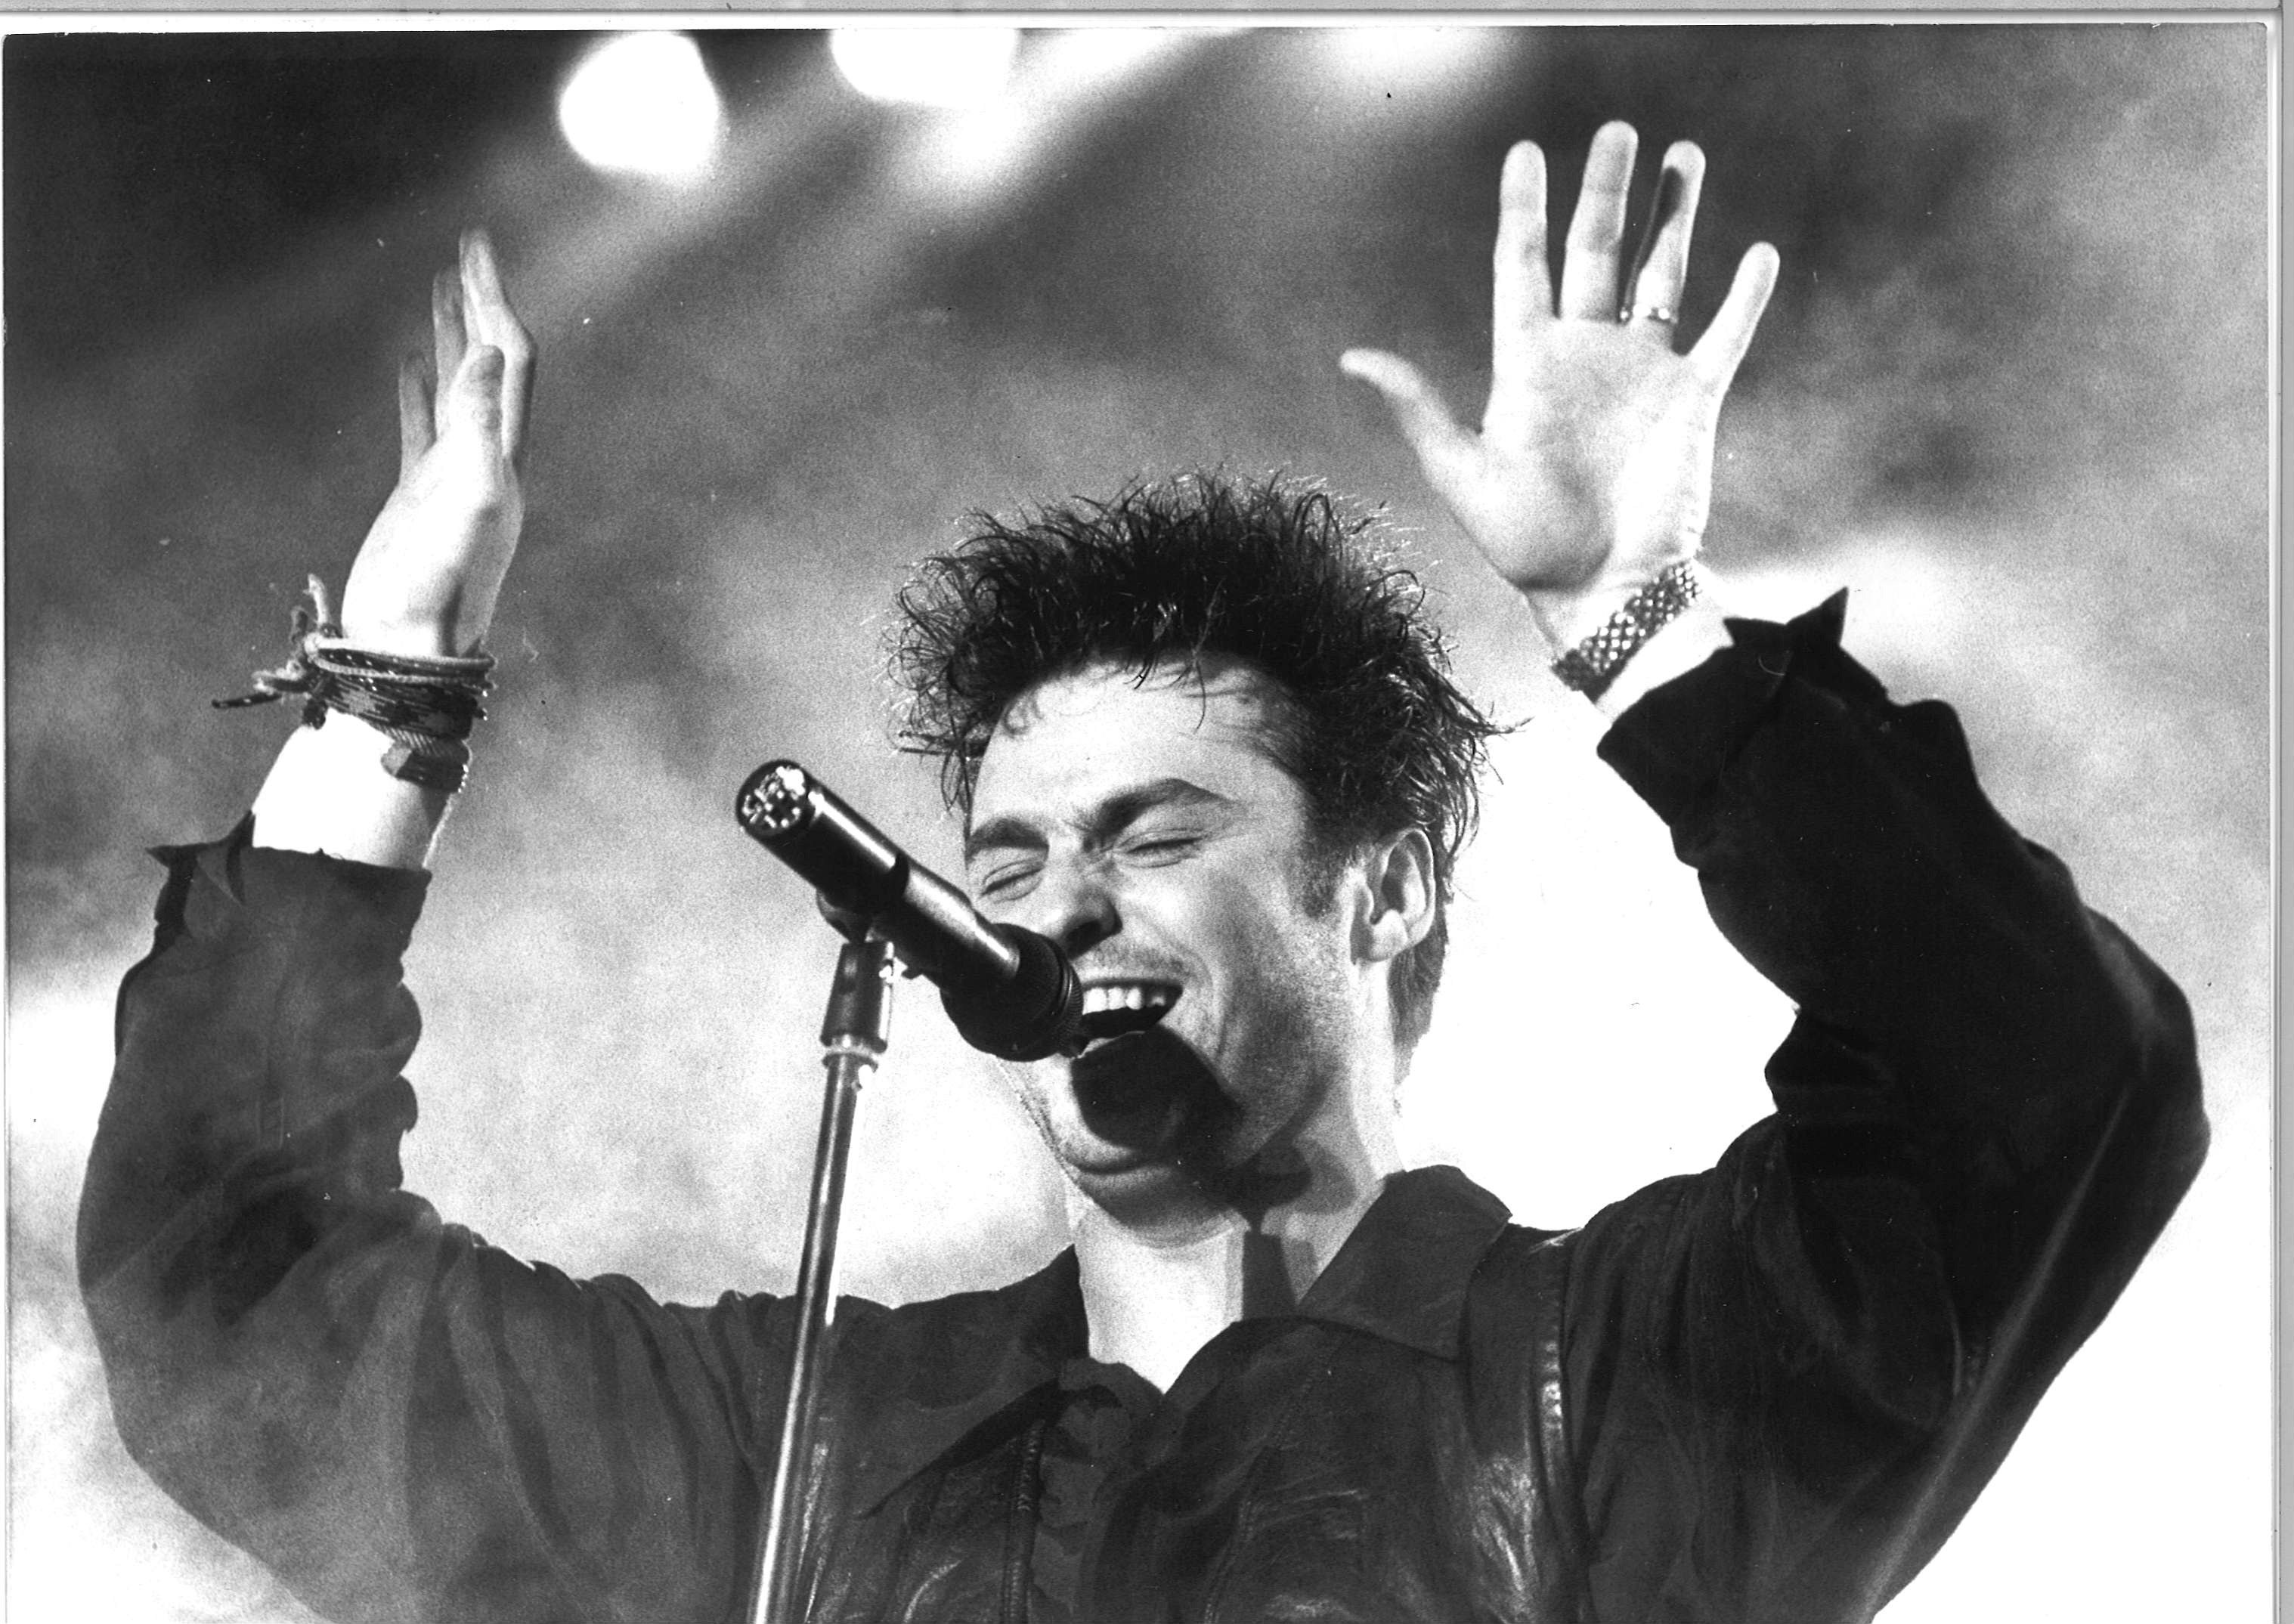 Marti Pellow entertaining the crowd, March 4 1990